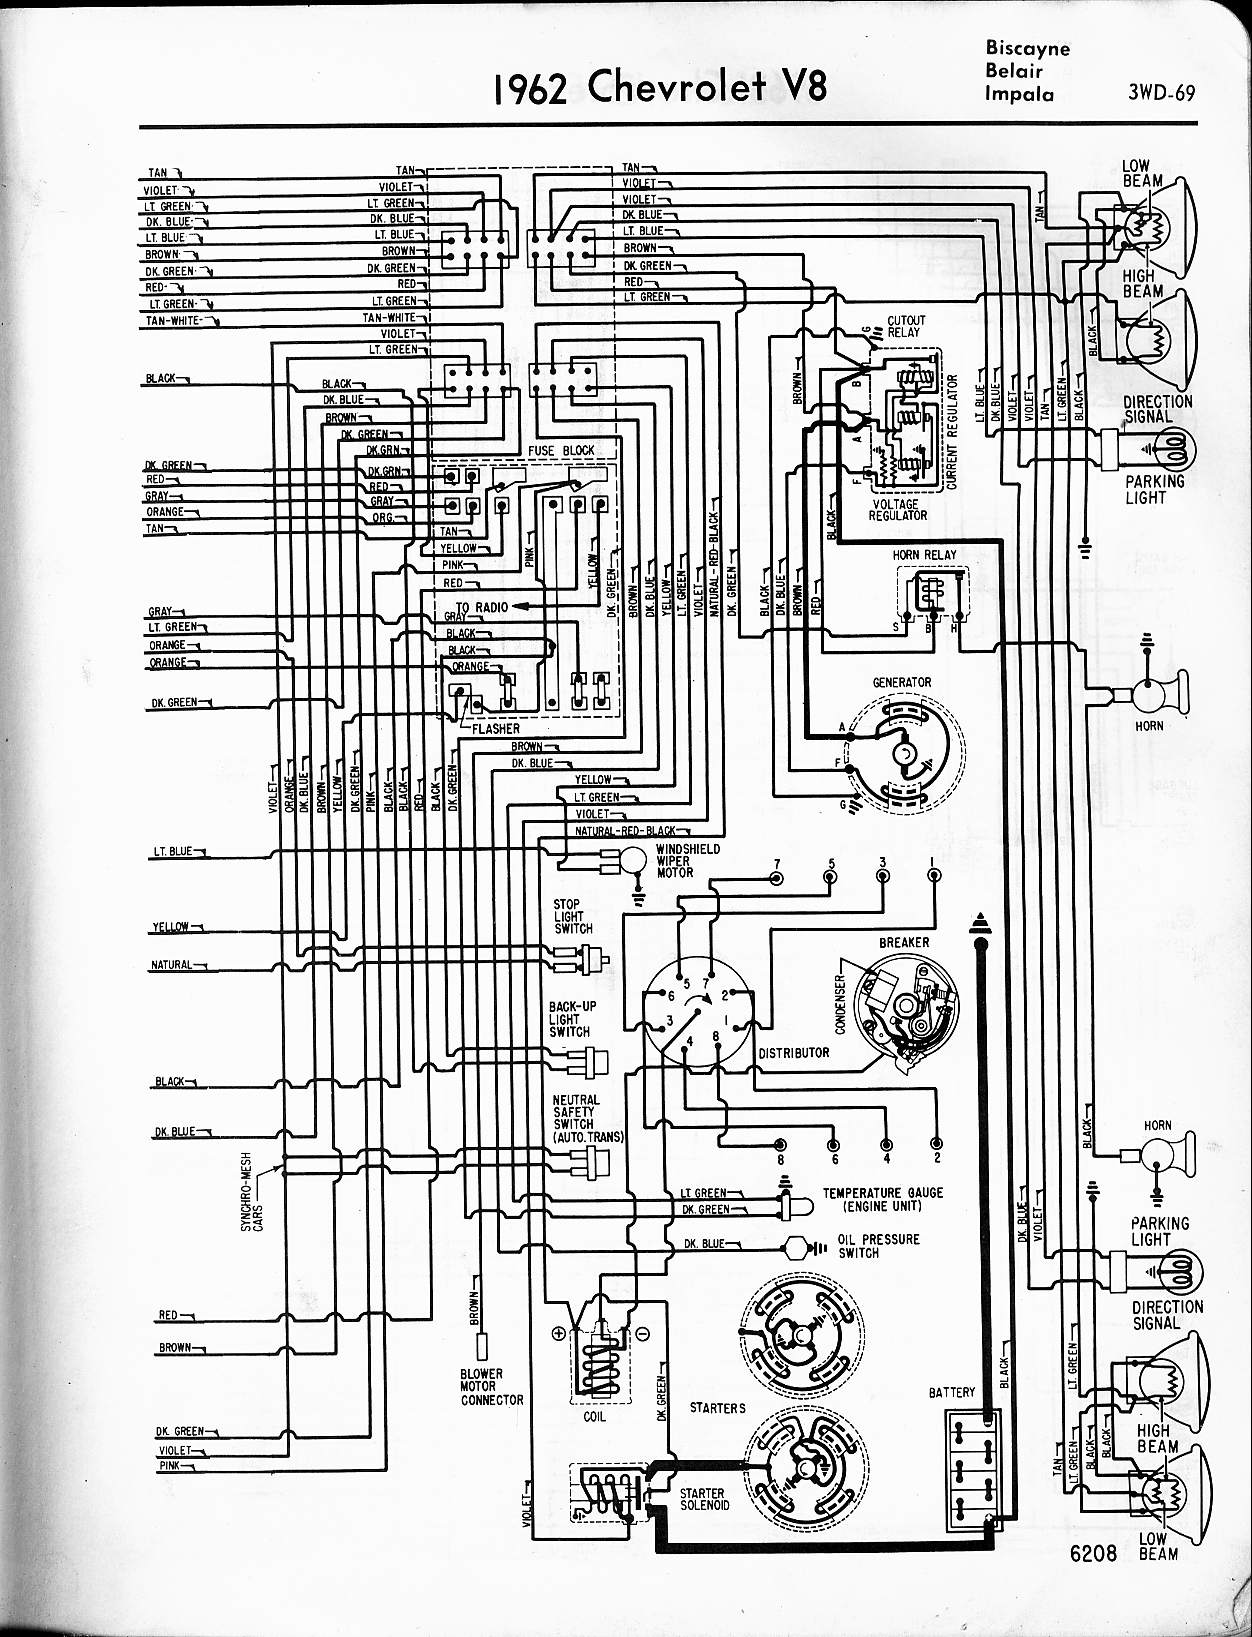 MWireChev62_3WD 069 57 65 chevy wiring diagrams 1962 impala wiring diagram at webbmarketing.co